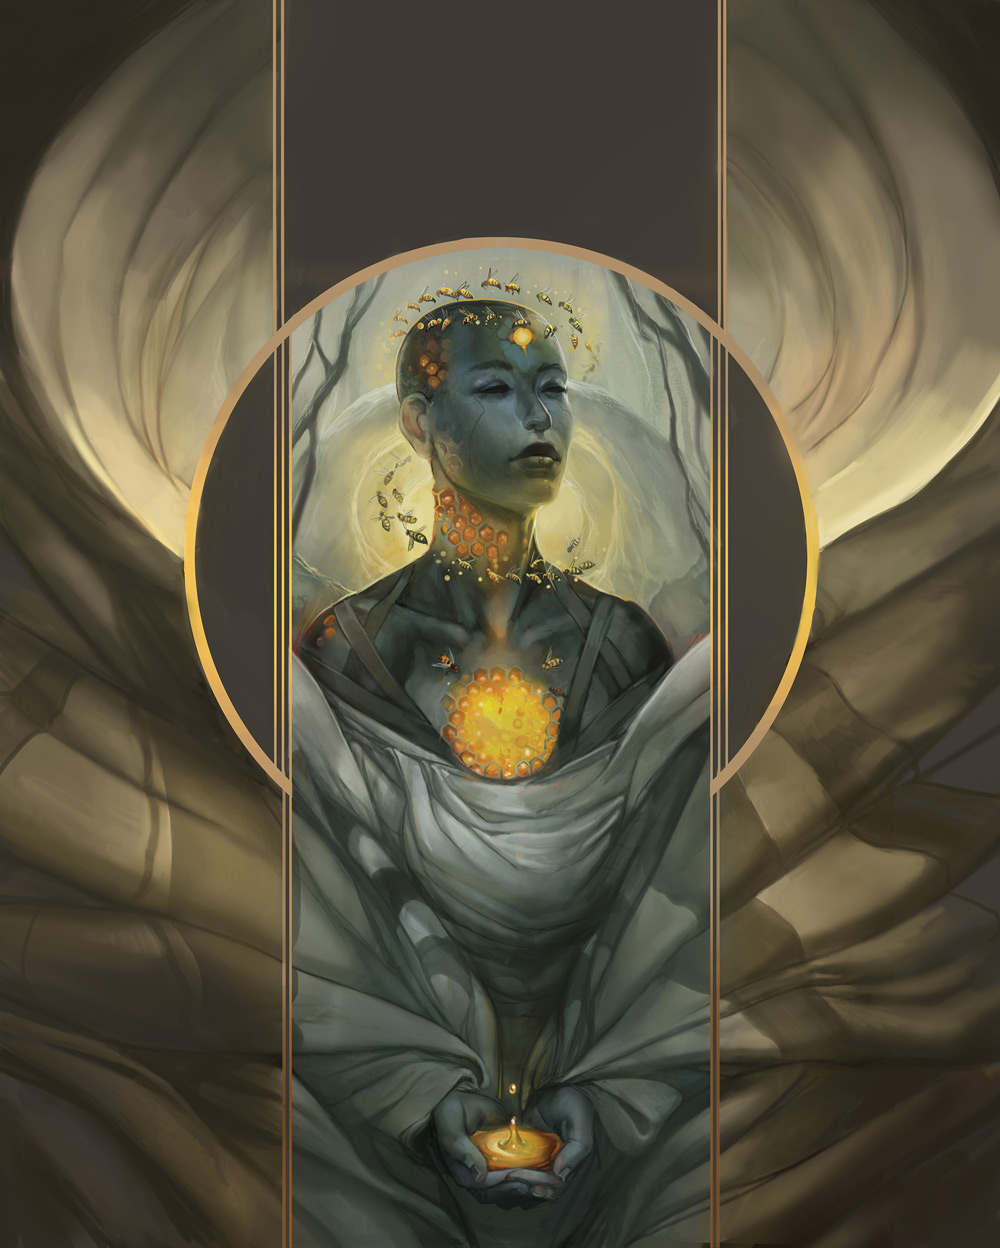 Artist Interview With Julie Dillon Apparition Literary